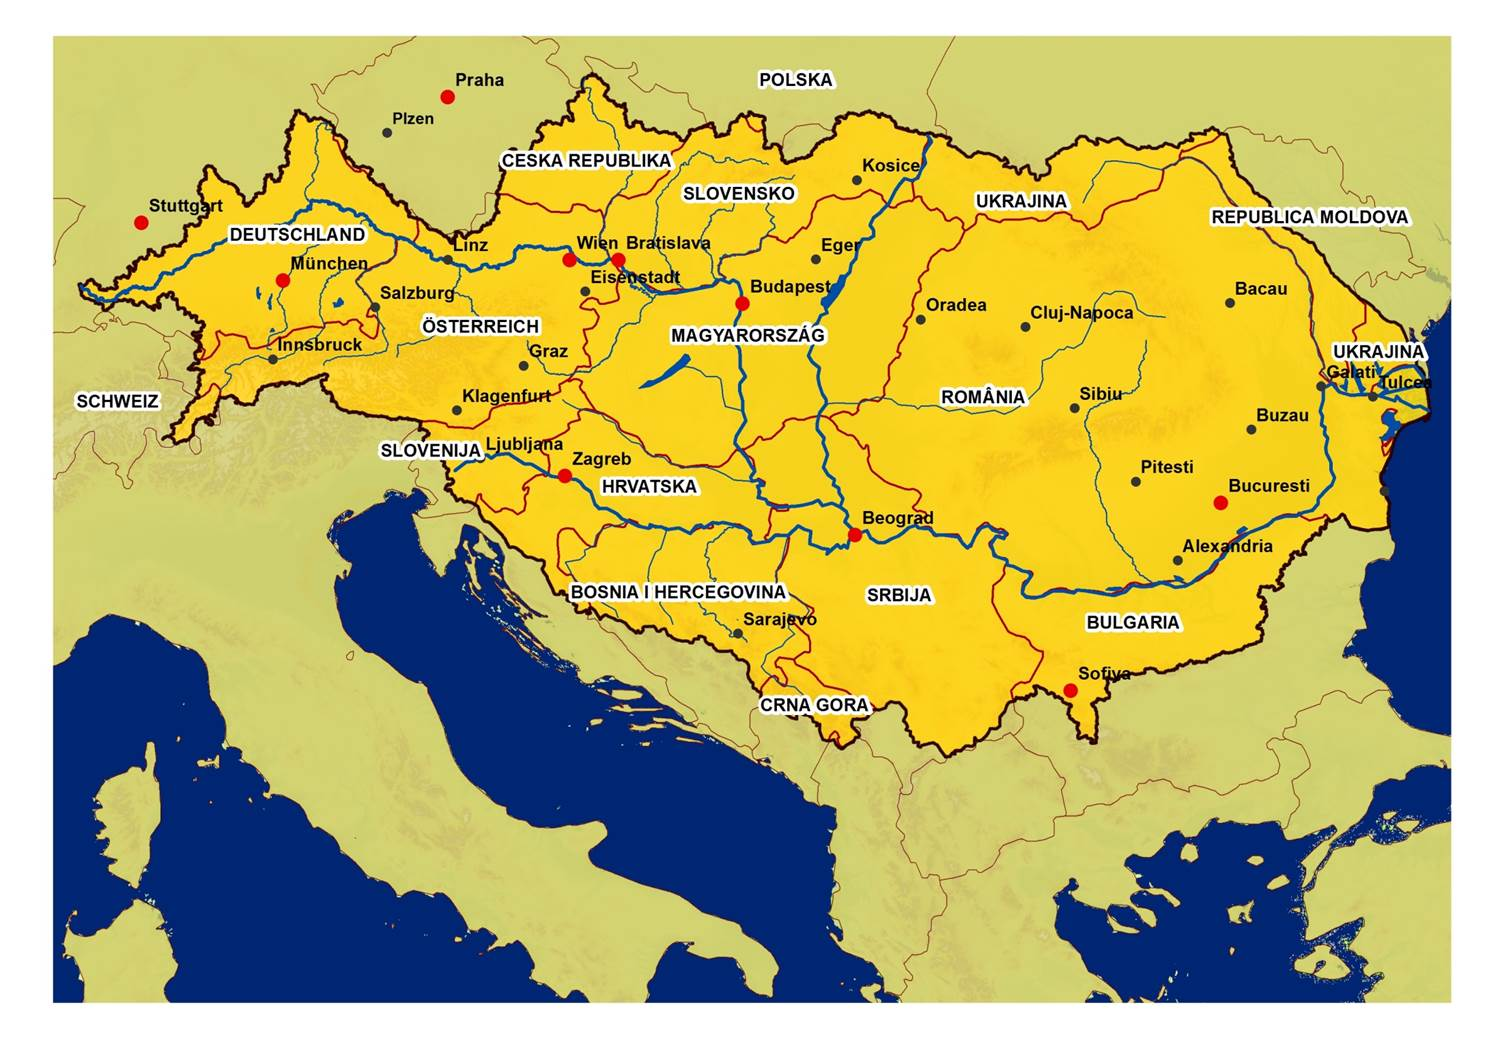 Global Change Atlas Of The Danube Region Sharing Research For - River atlas